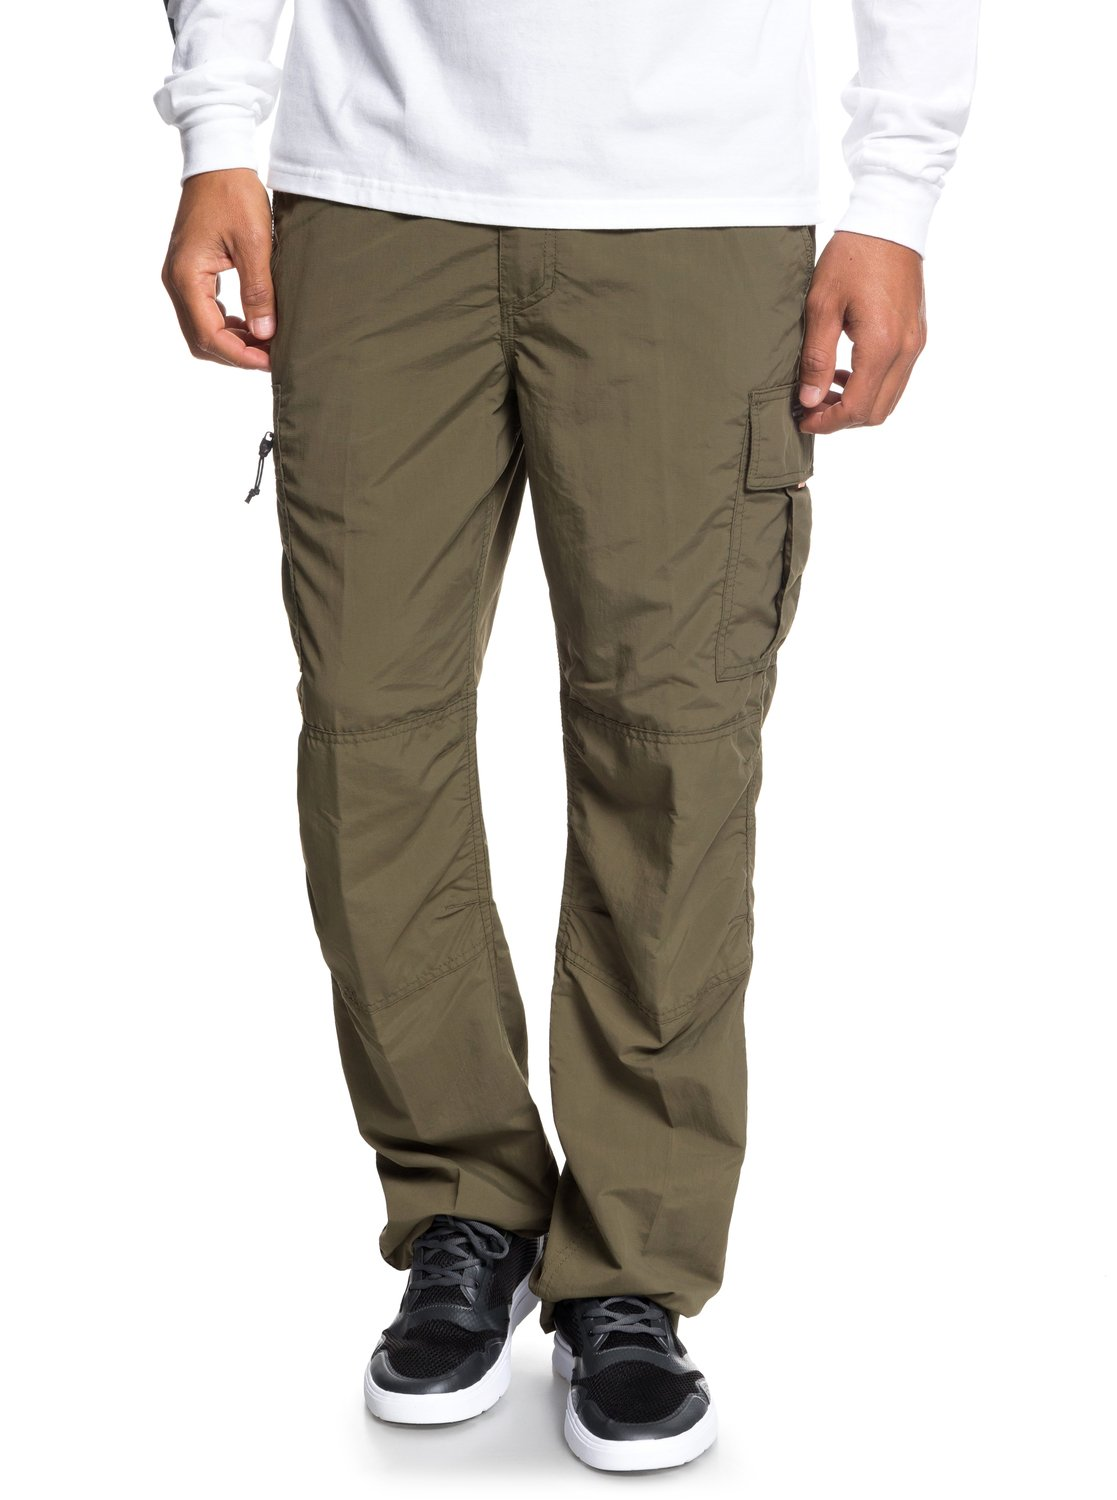 Skipper Pantalon technique Quiksilver EQMNP03011 Marron Waterman 0 Homme cargo pour 6SqZIw